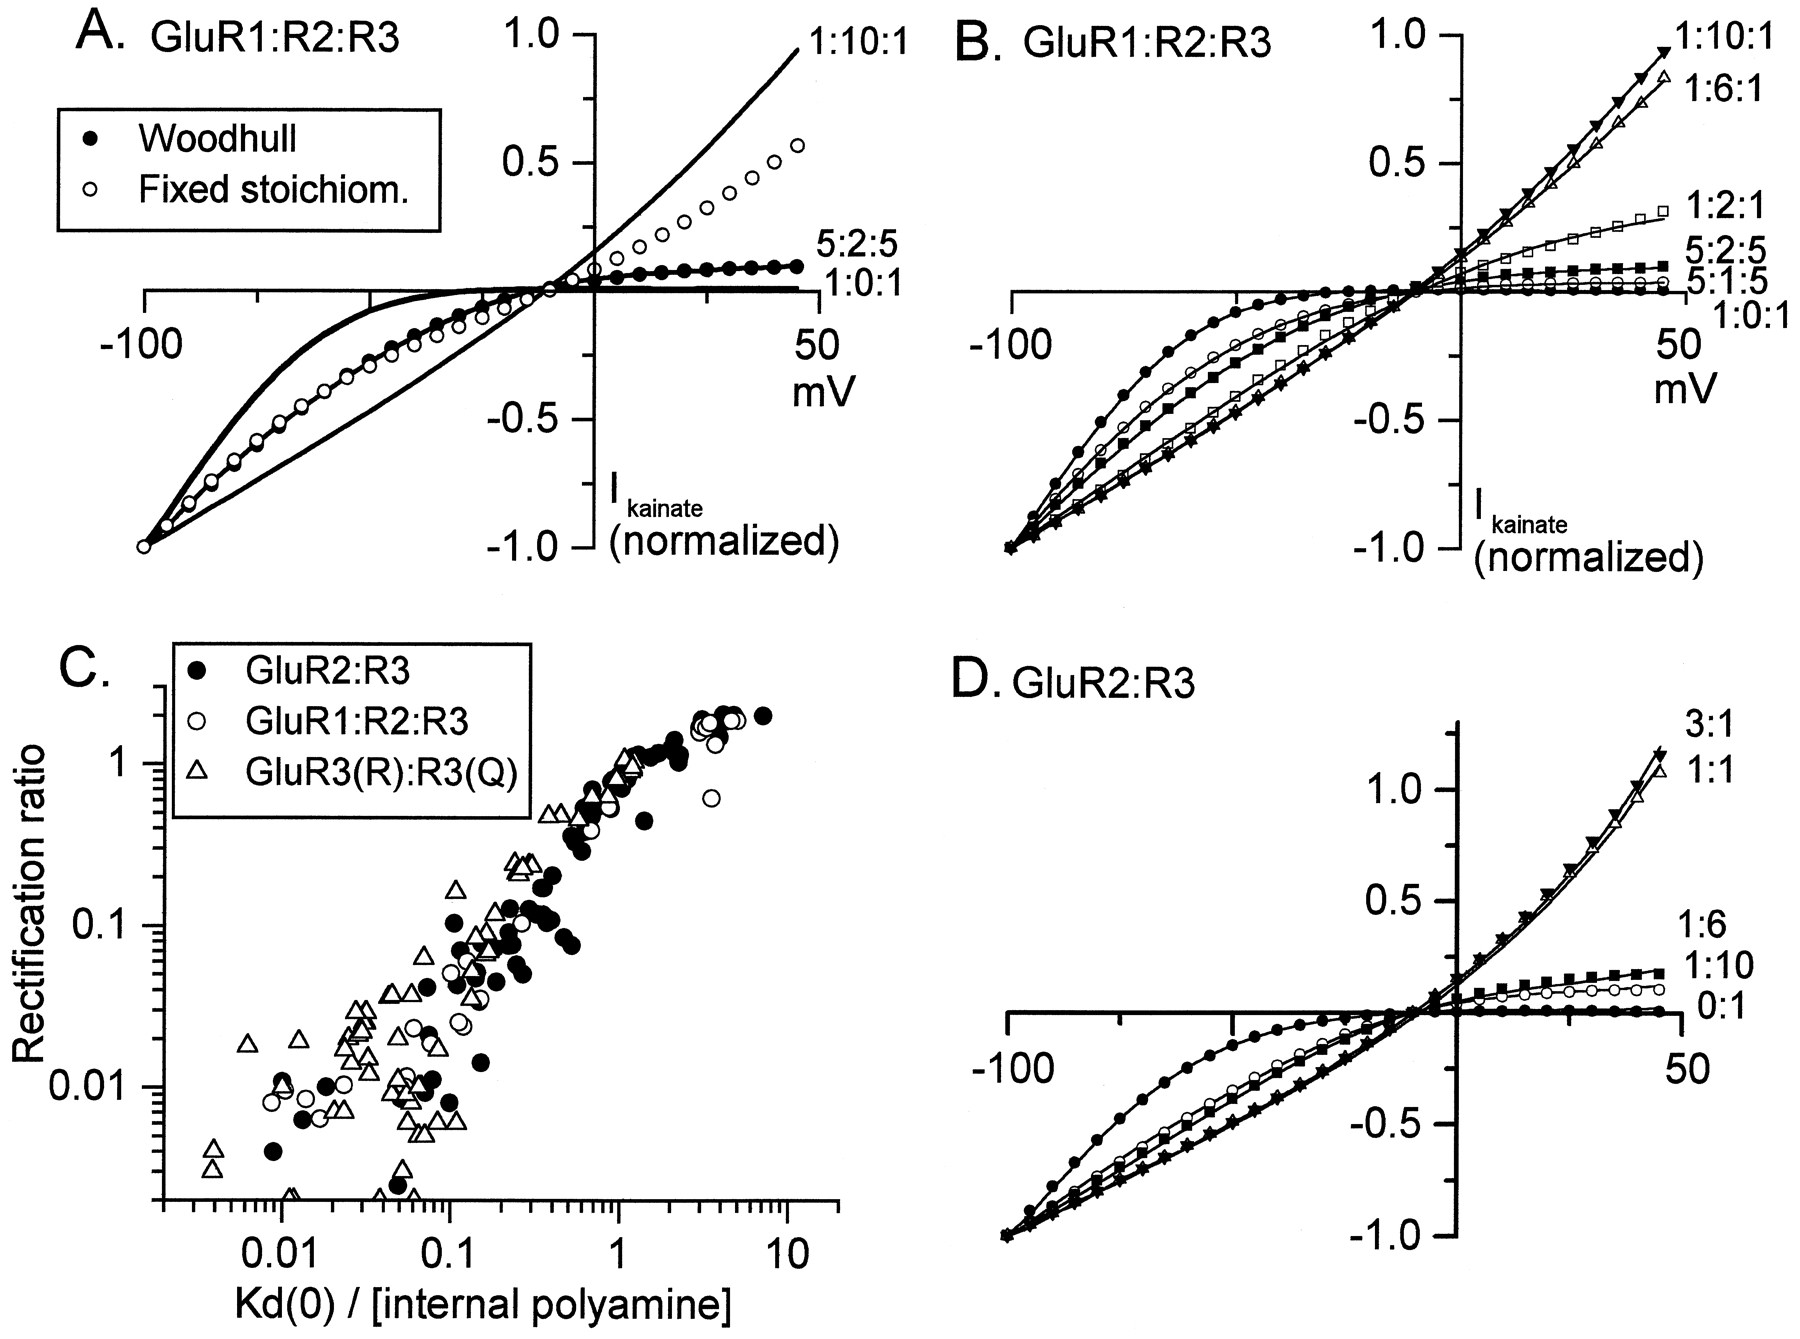 Differential Dependence on GluR2 Expression of Three